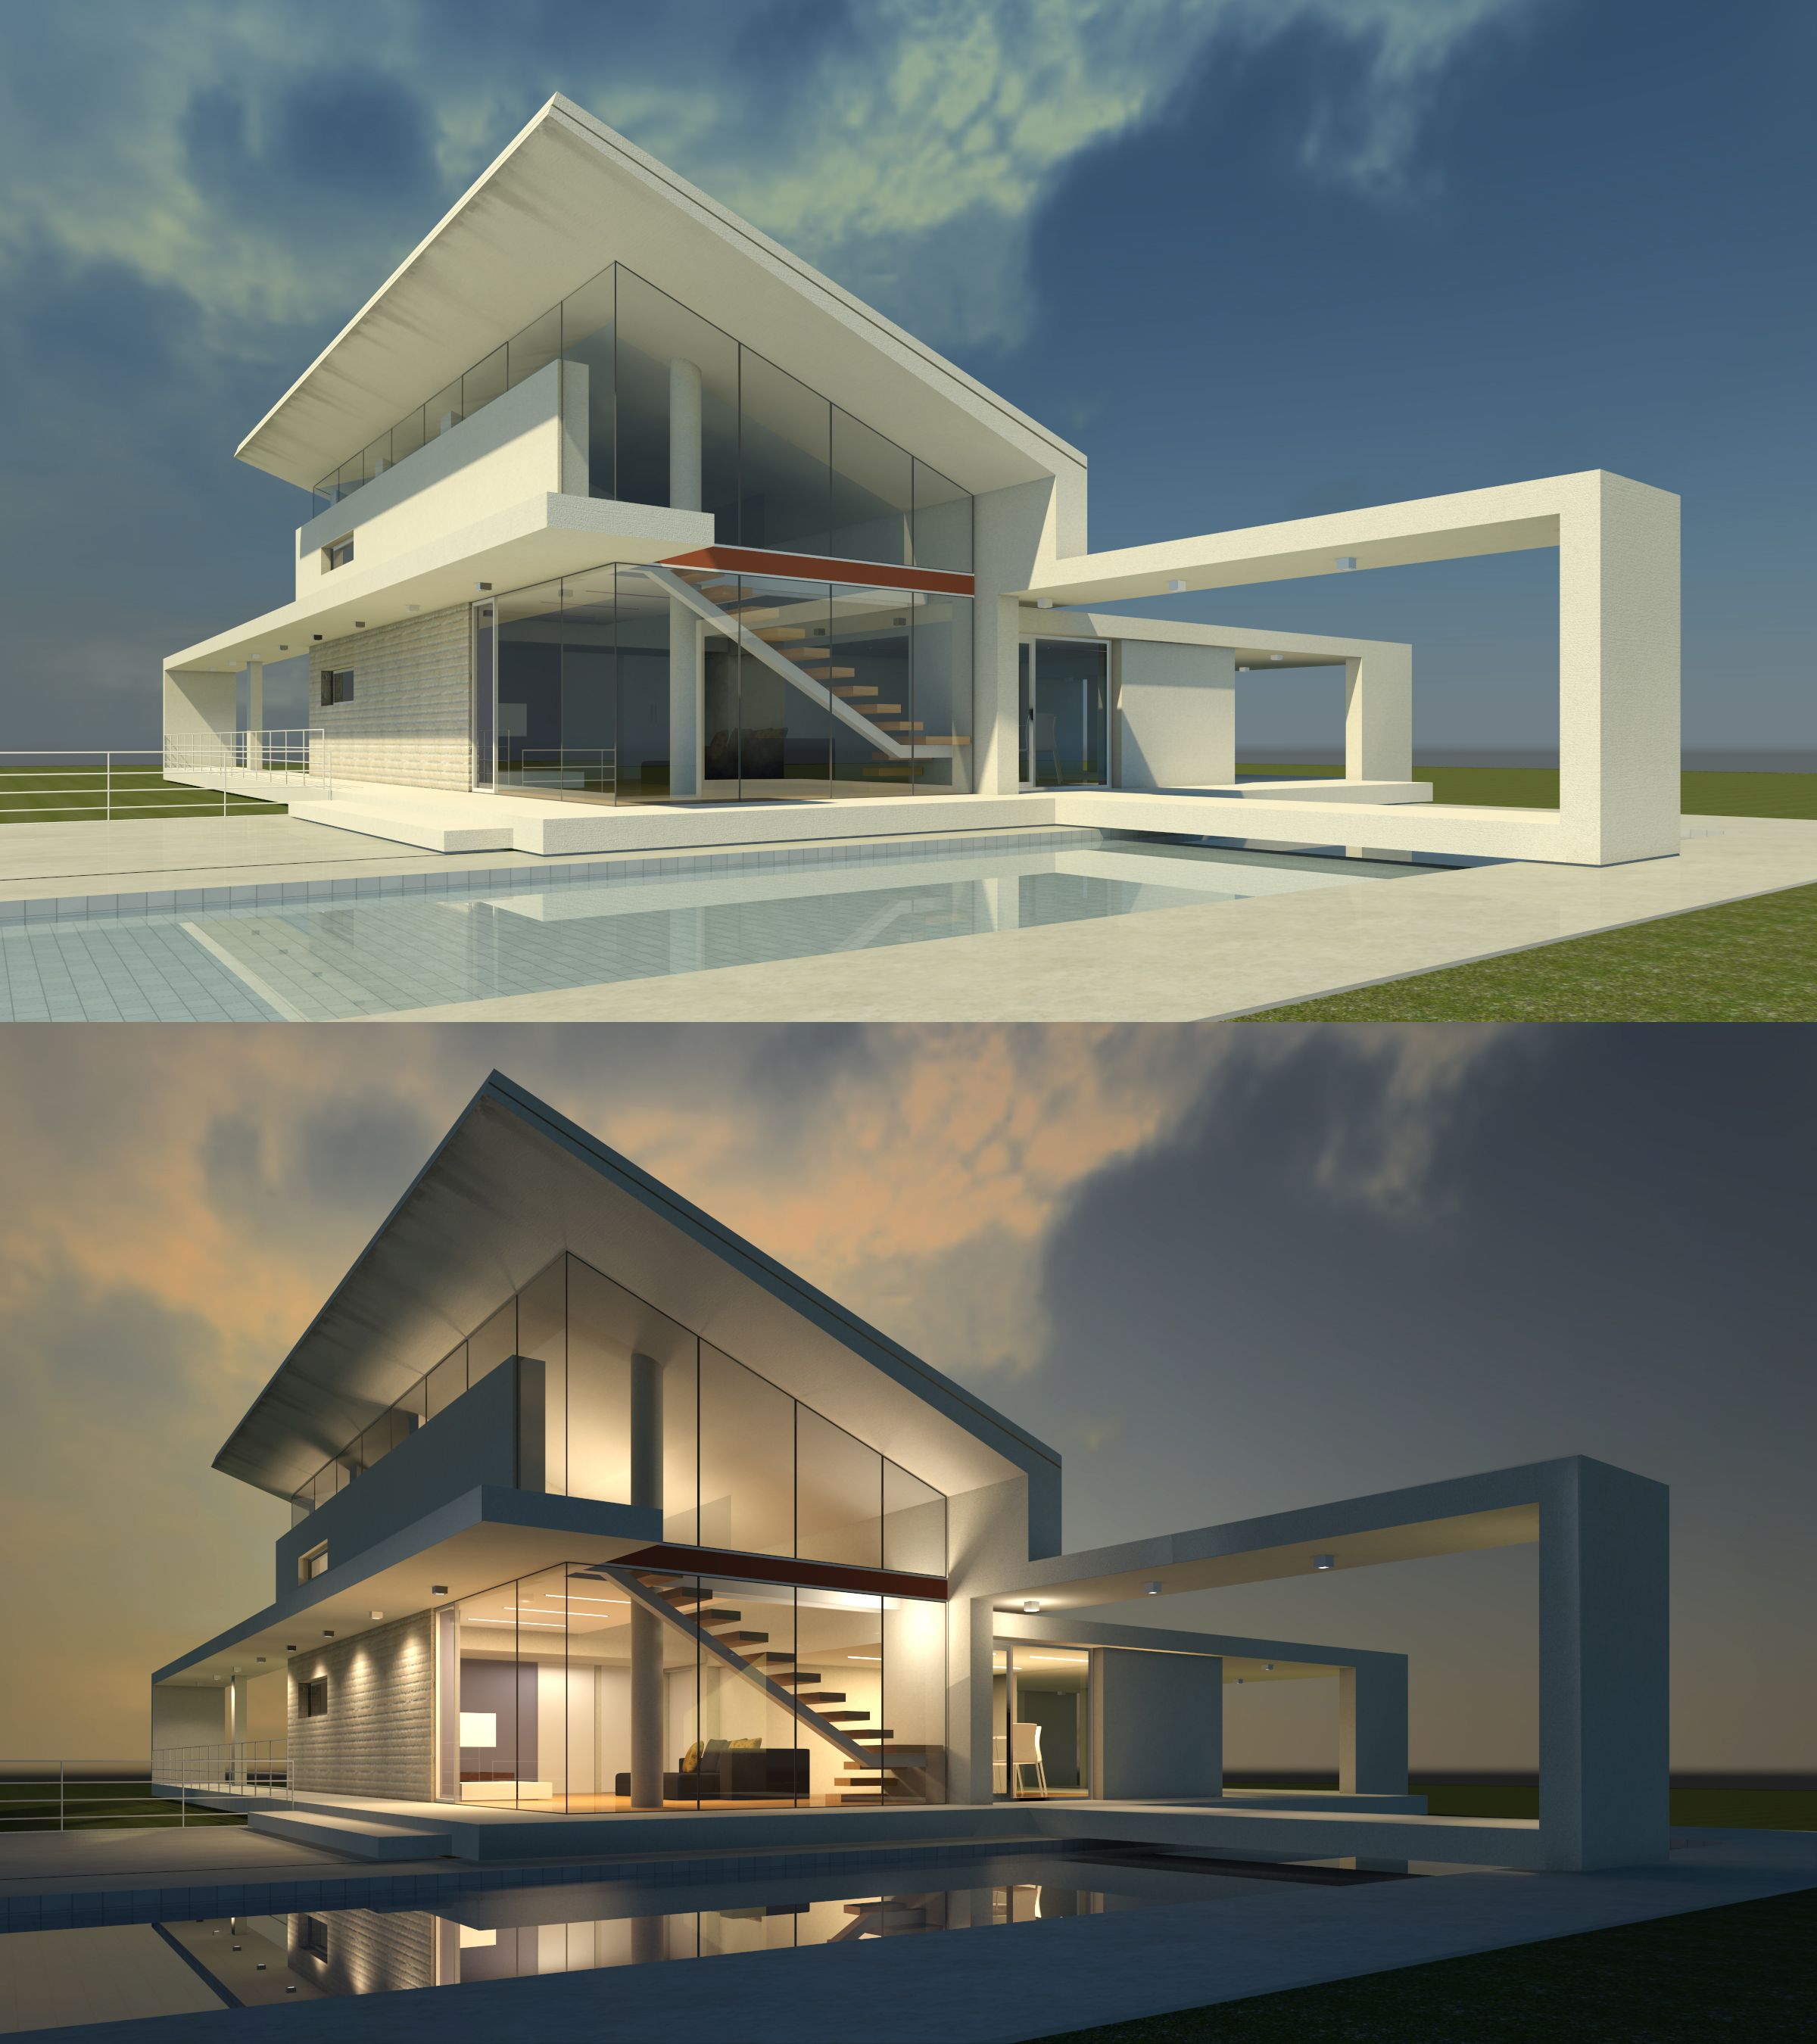 3d max exterior design design day and night ri akademi for Exterior 3d design